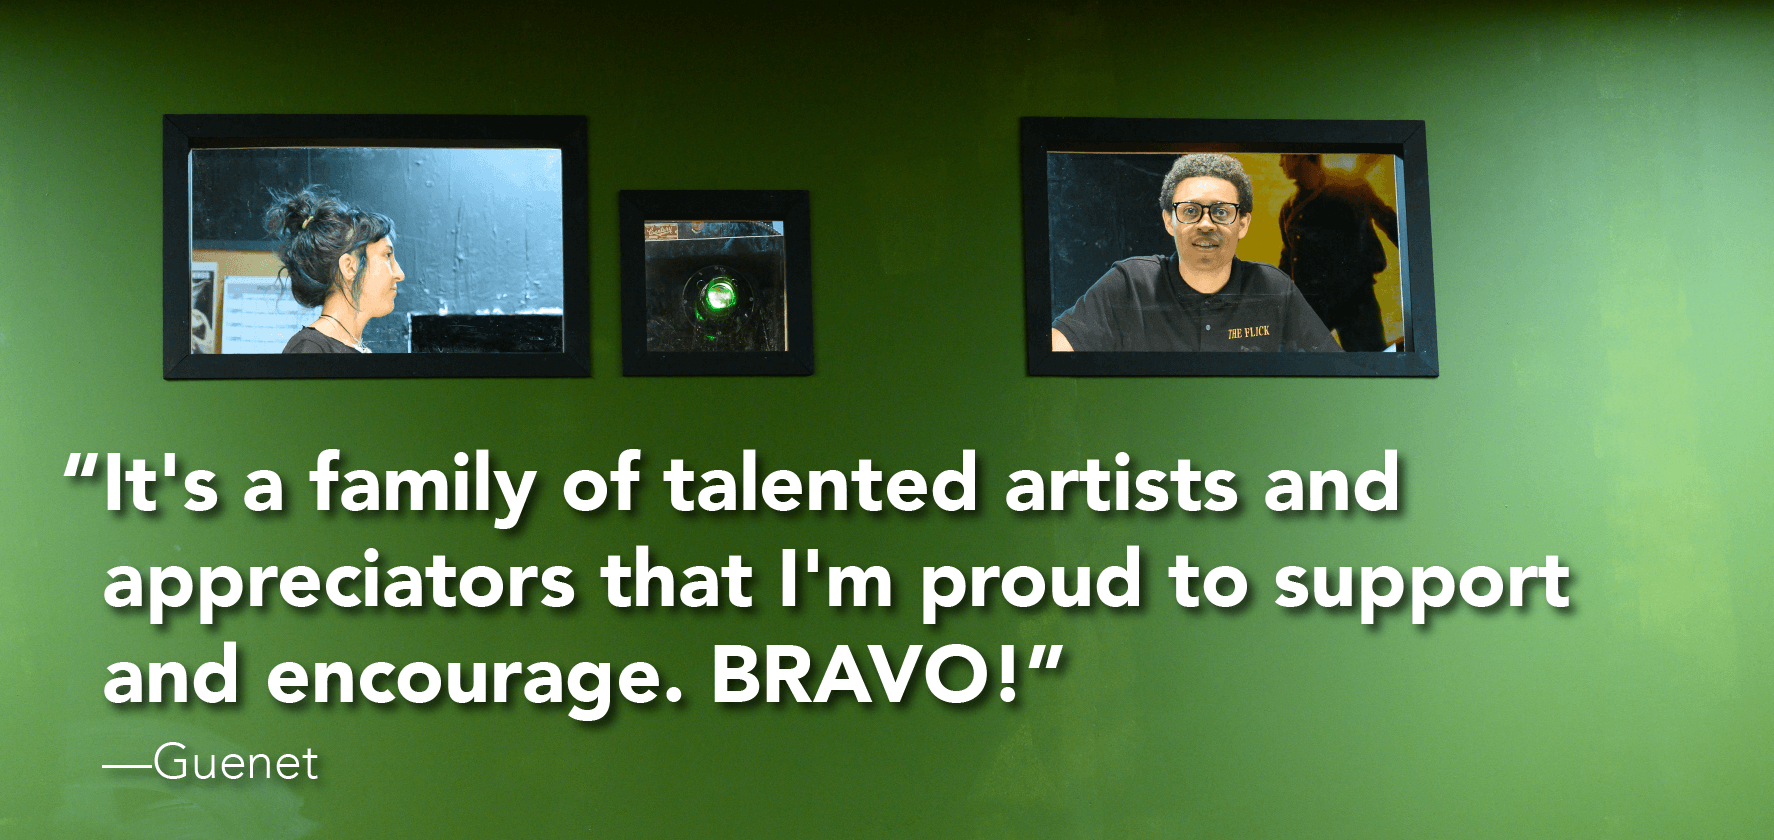 'It's a family of talented artists and appreciators that I'm proud to support and encourage. BRAVO!'  —Guenet